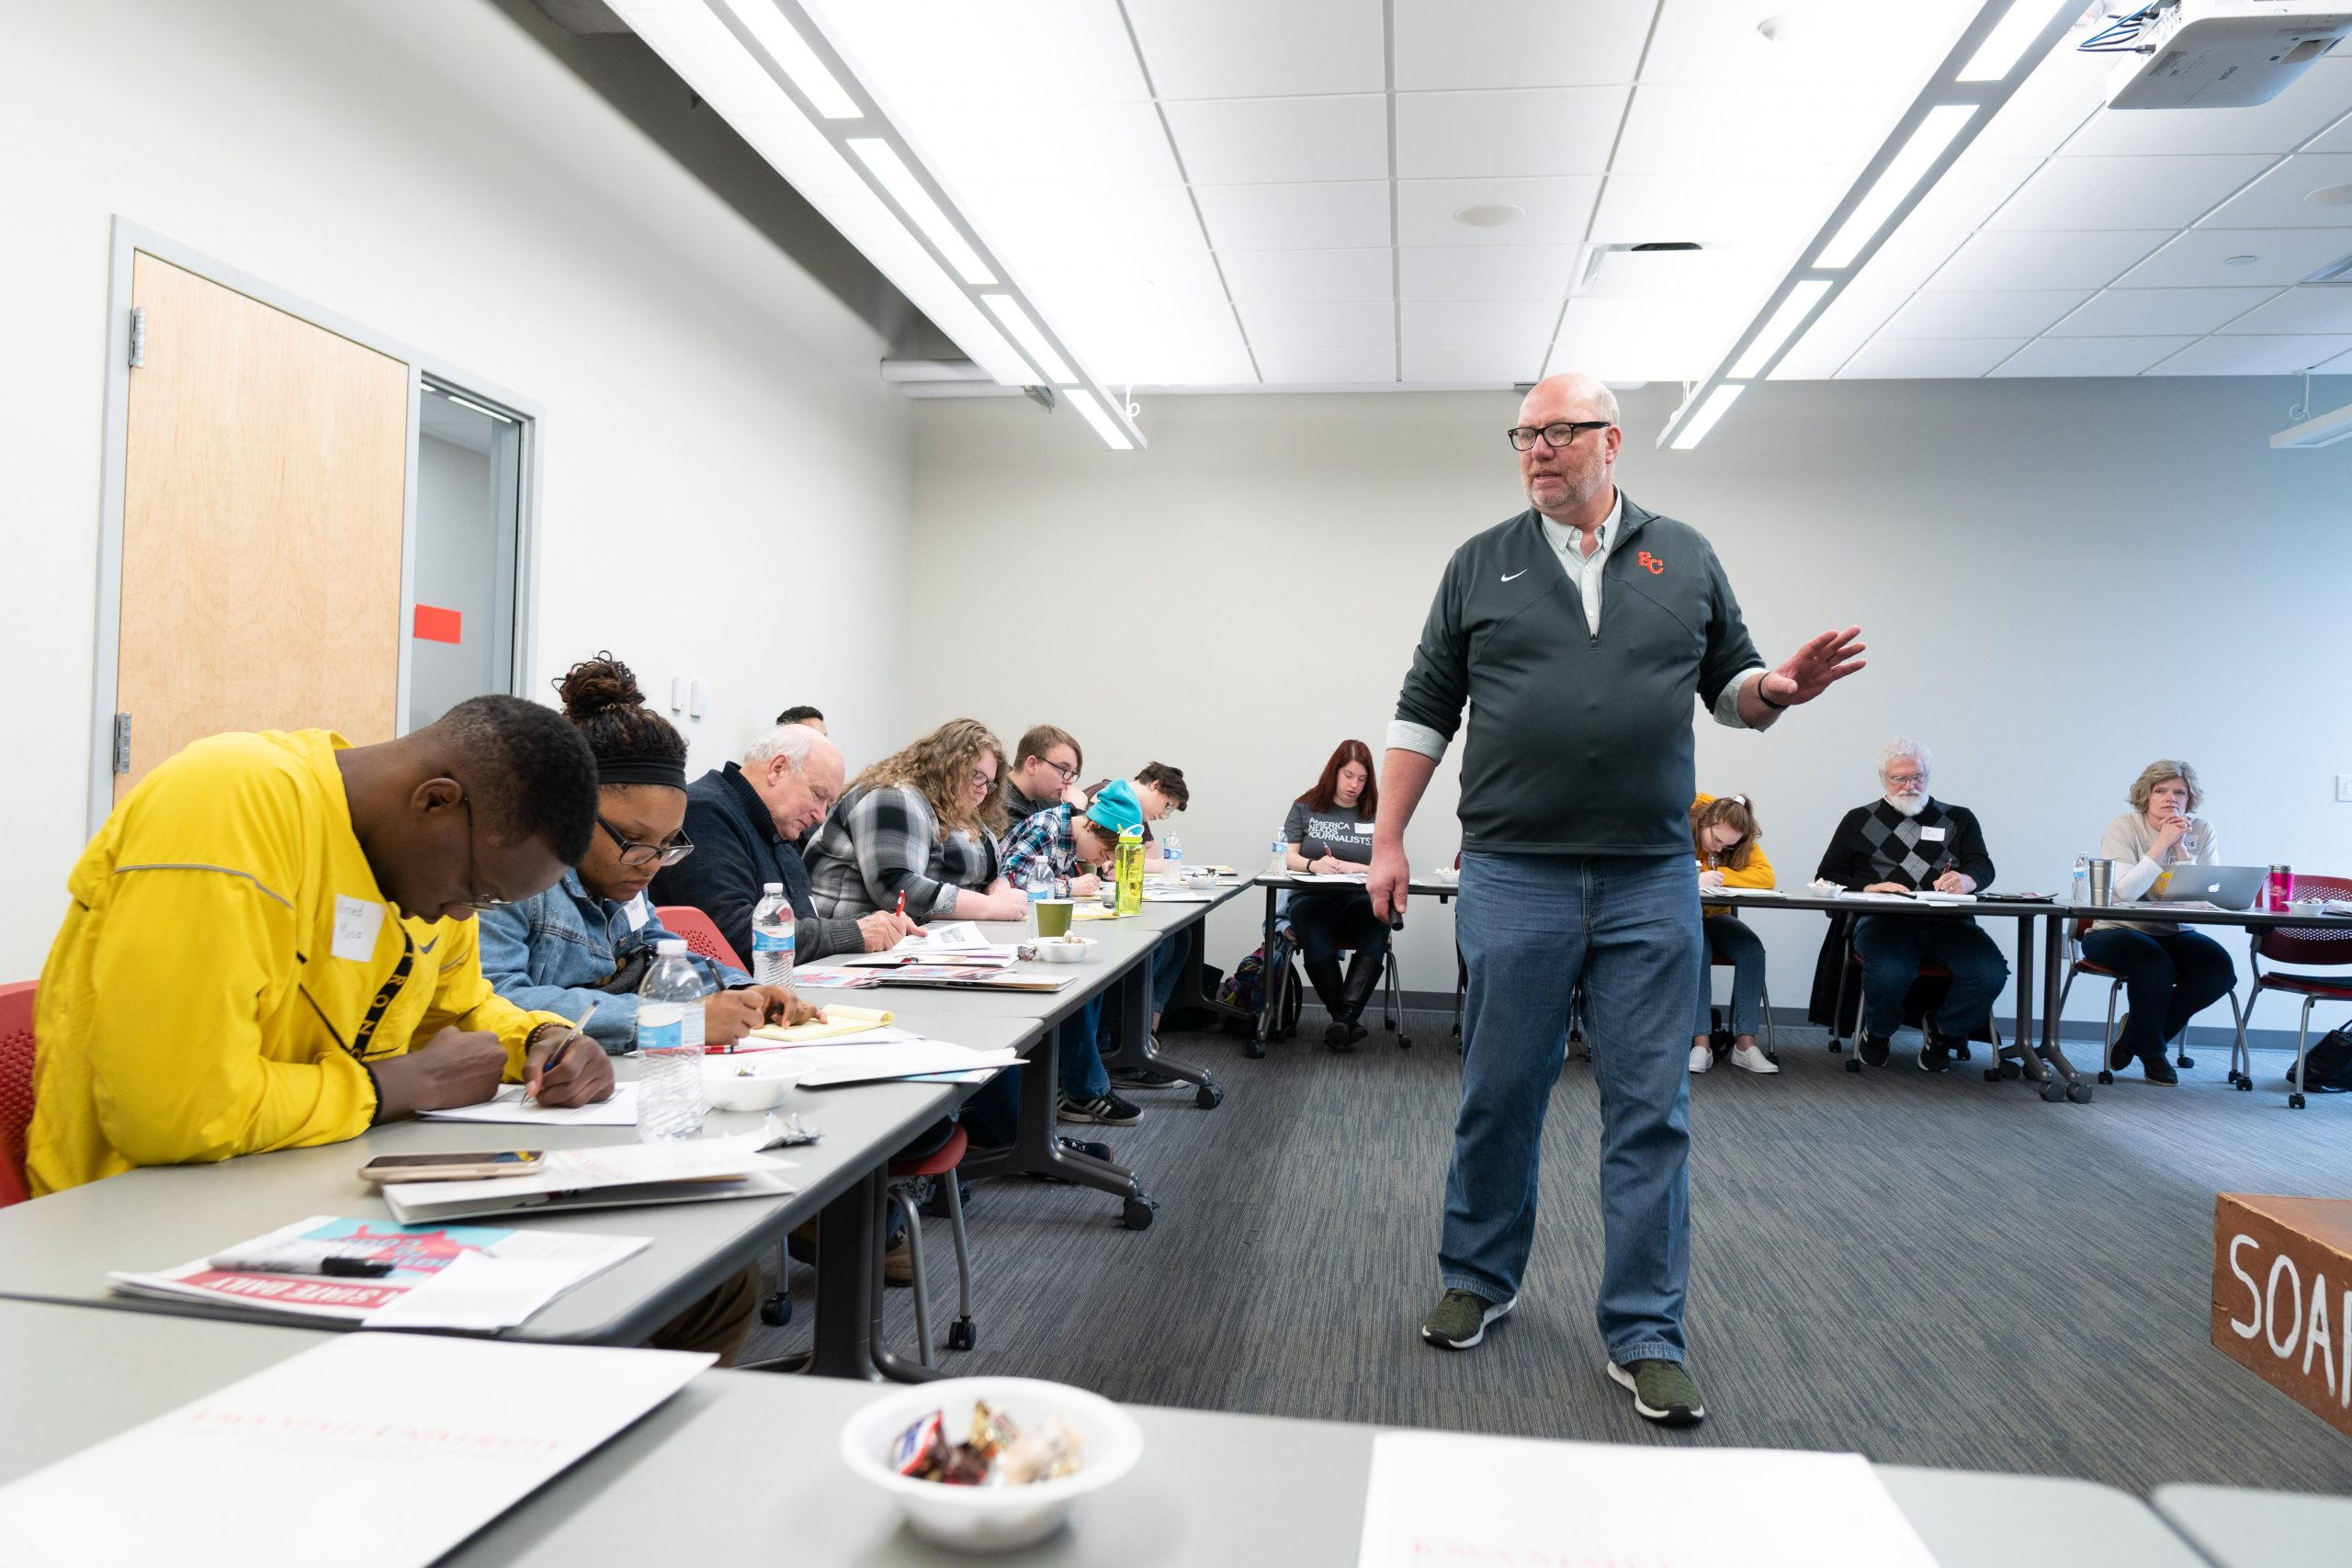 a man walks around a room filled with people during a workshop